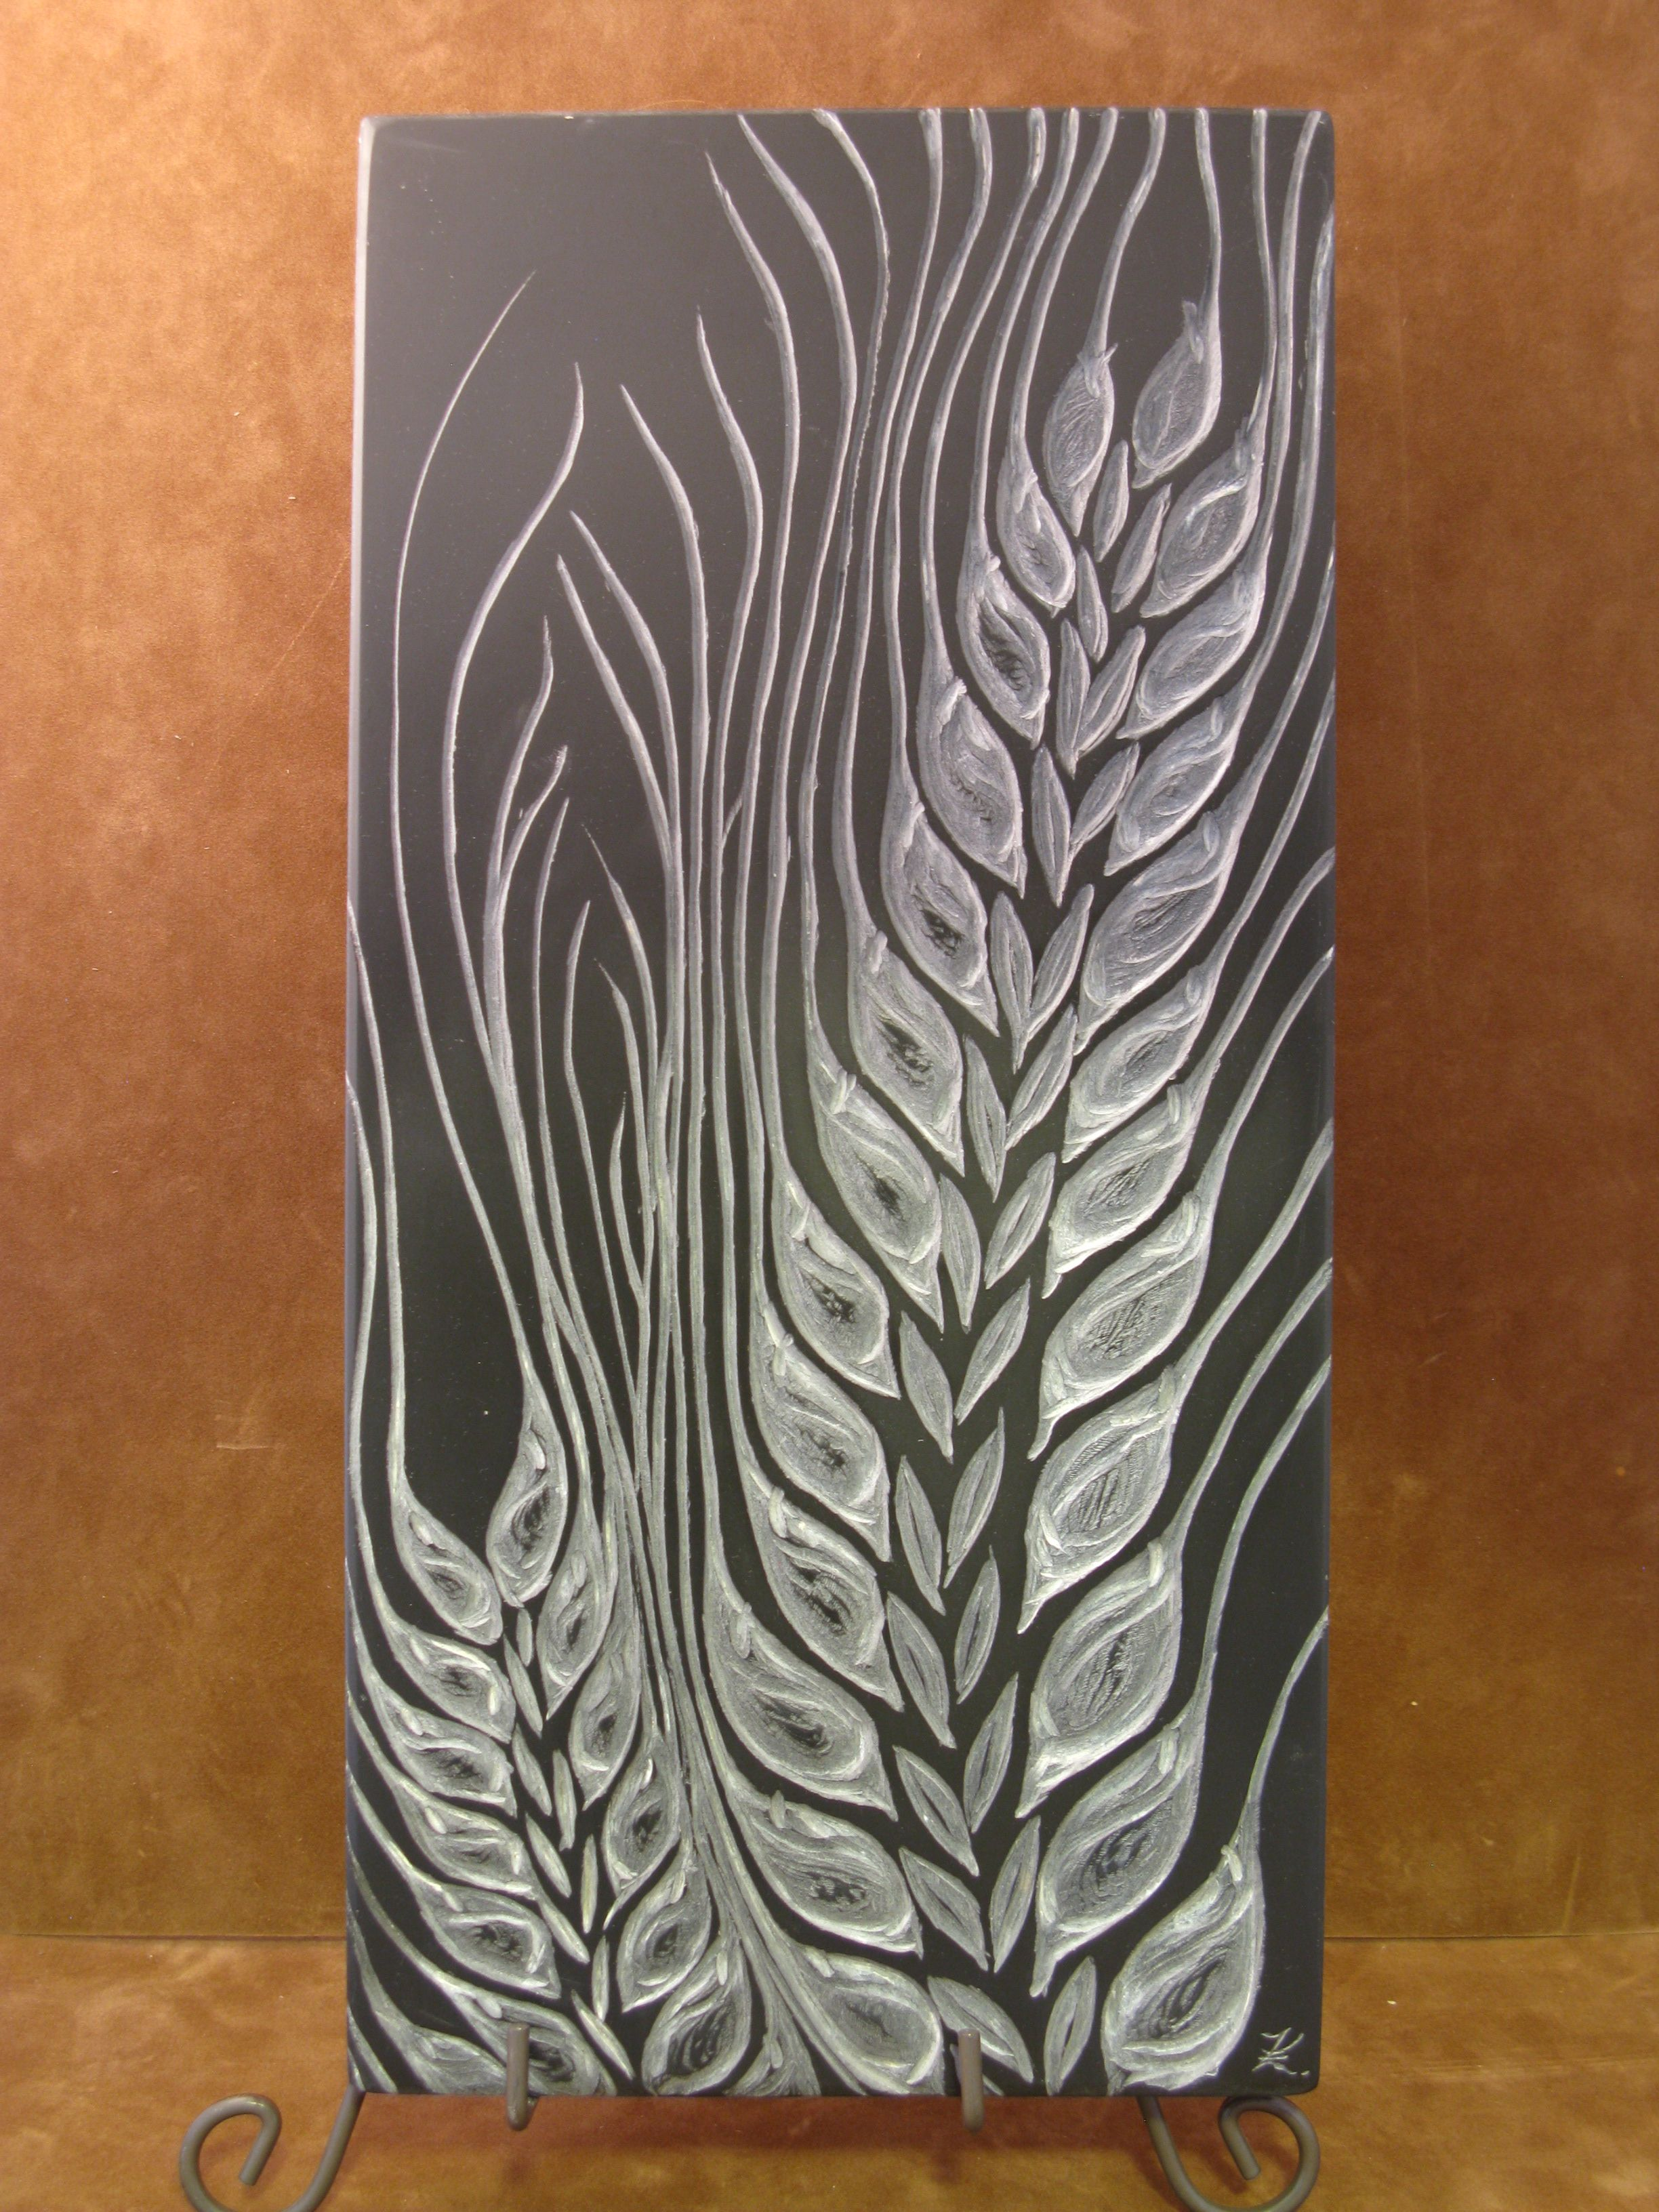 Quot Barley Quot Carved Relief Out Of Black Slate By Kathy Vinson